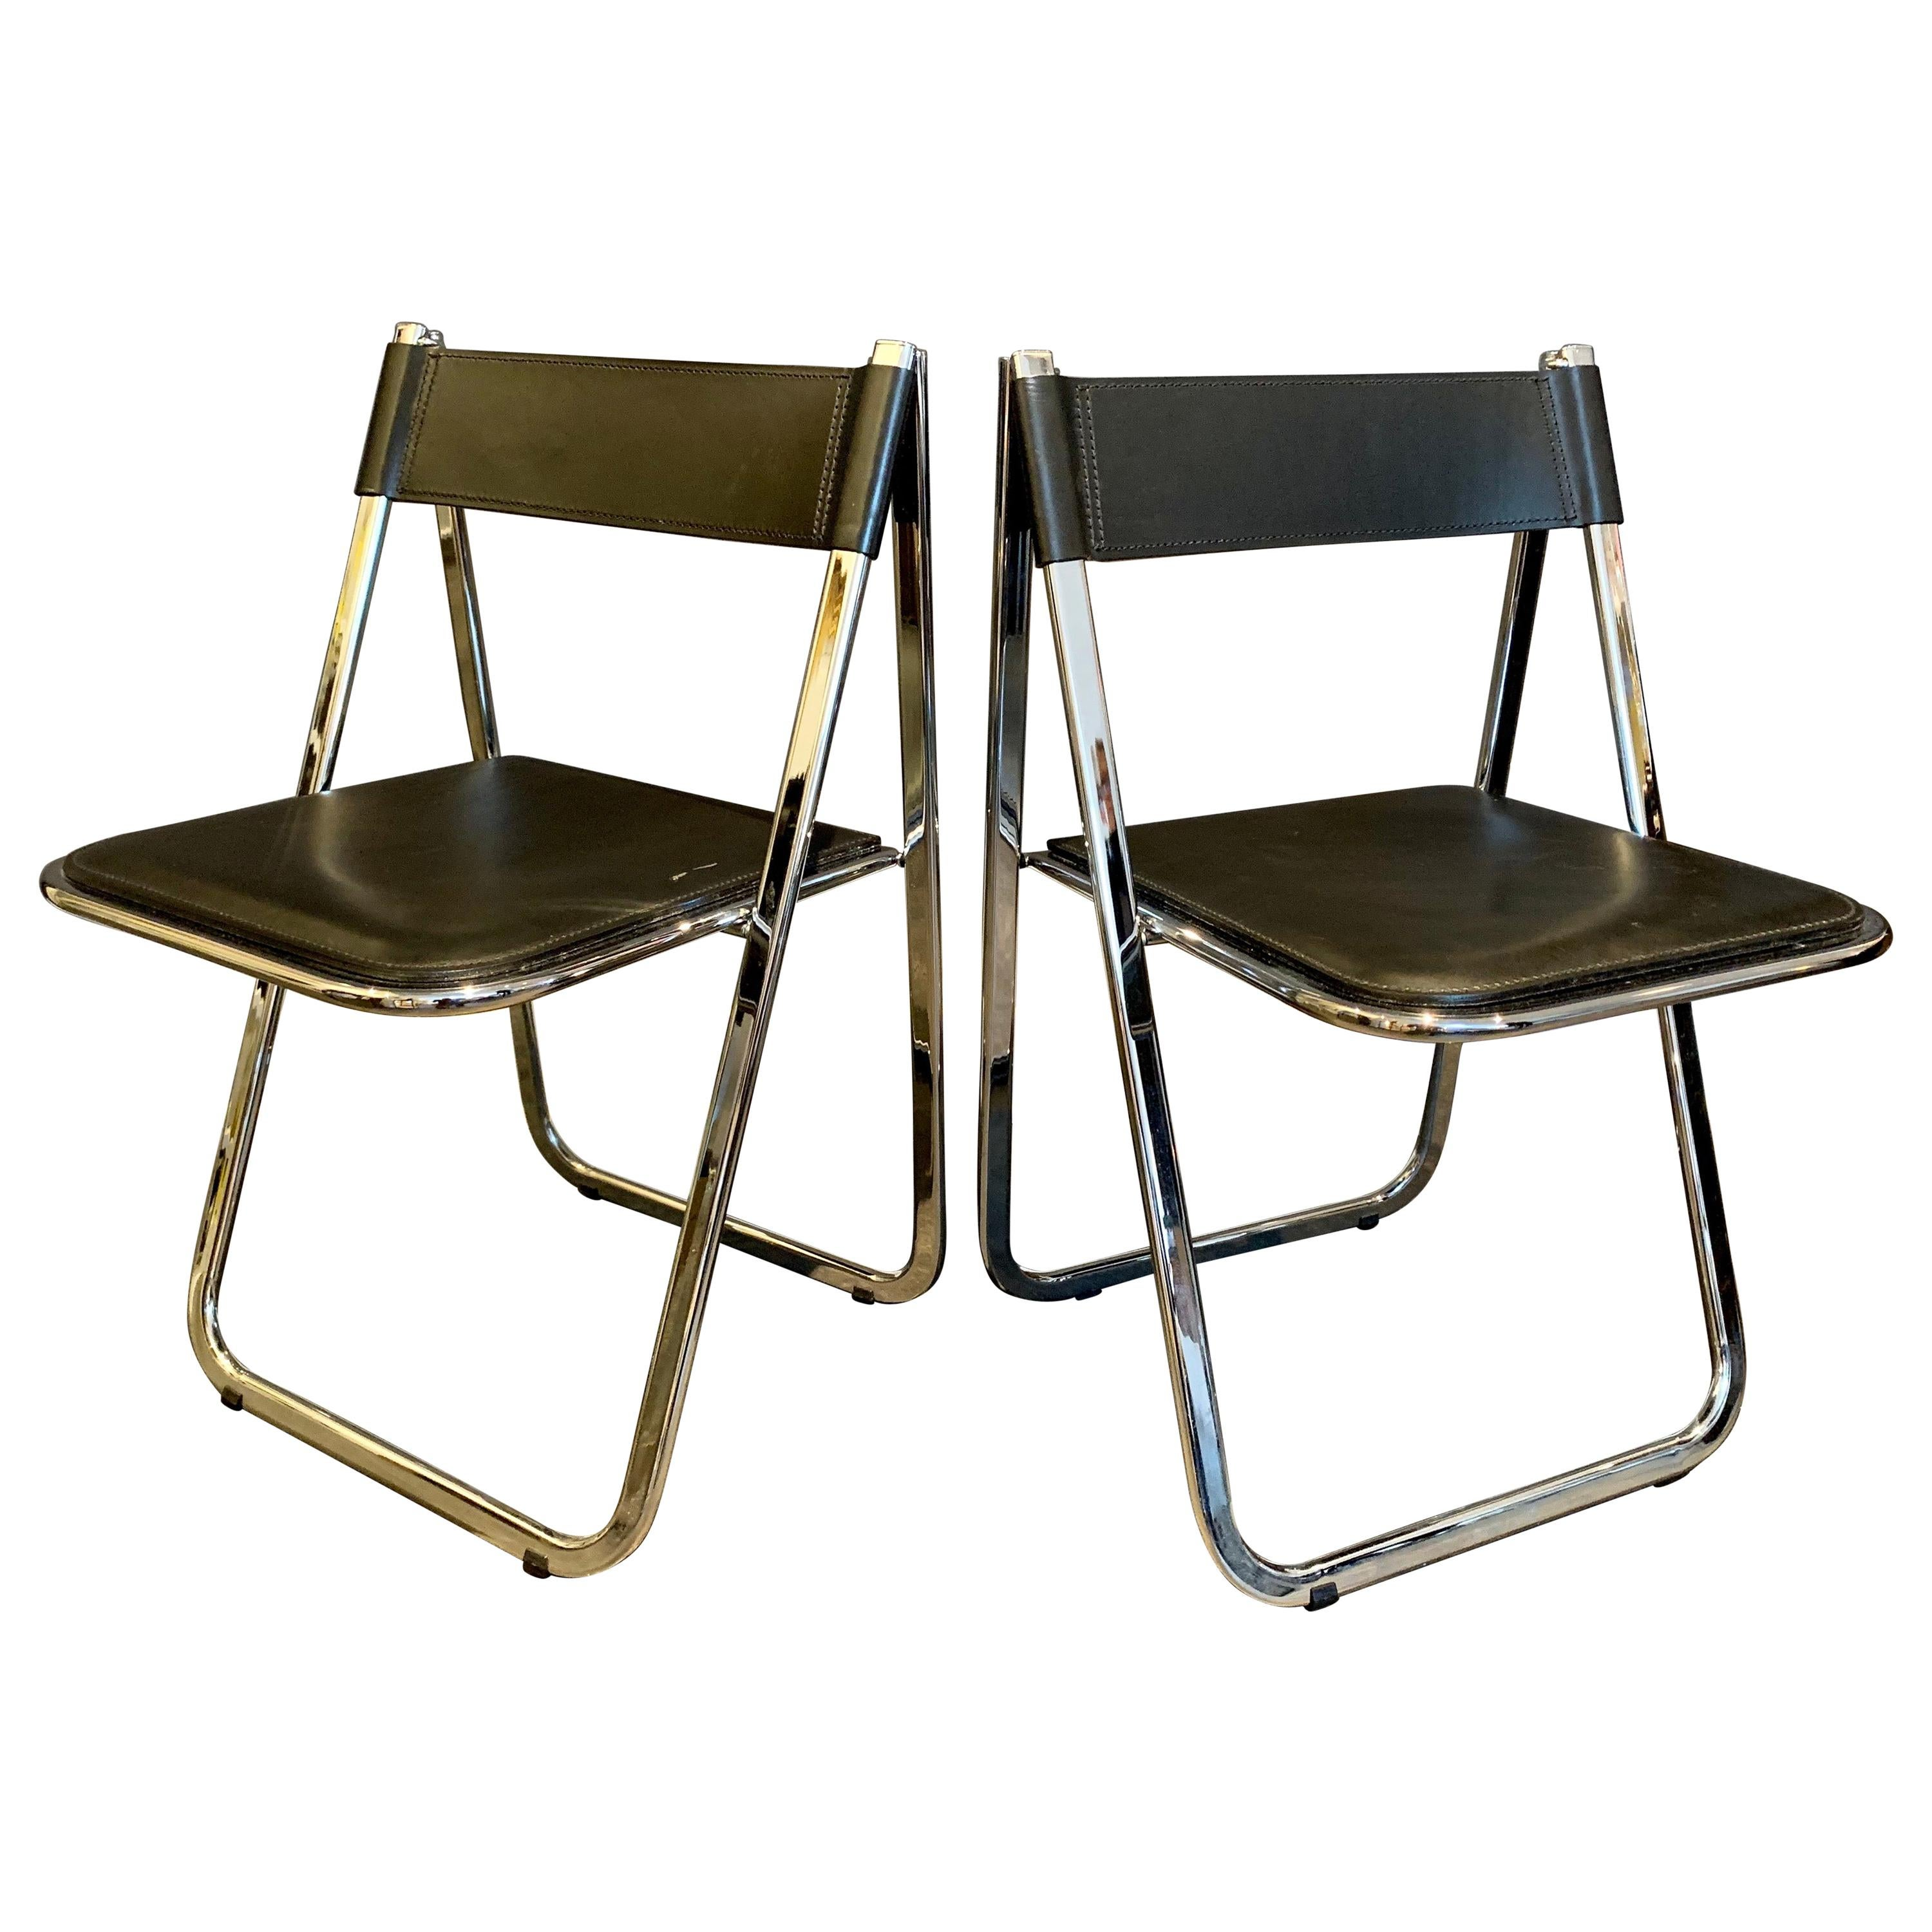 """Tamara"" Stitched Leather Folding Chairs by Arrben Italia, Pair"